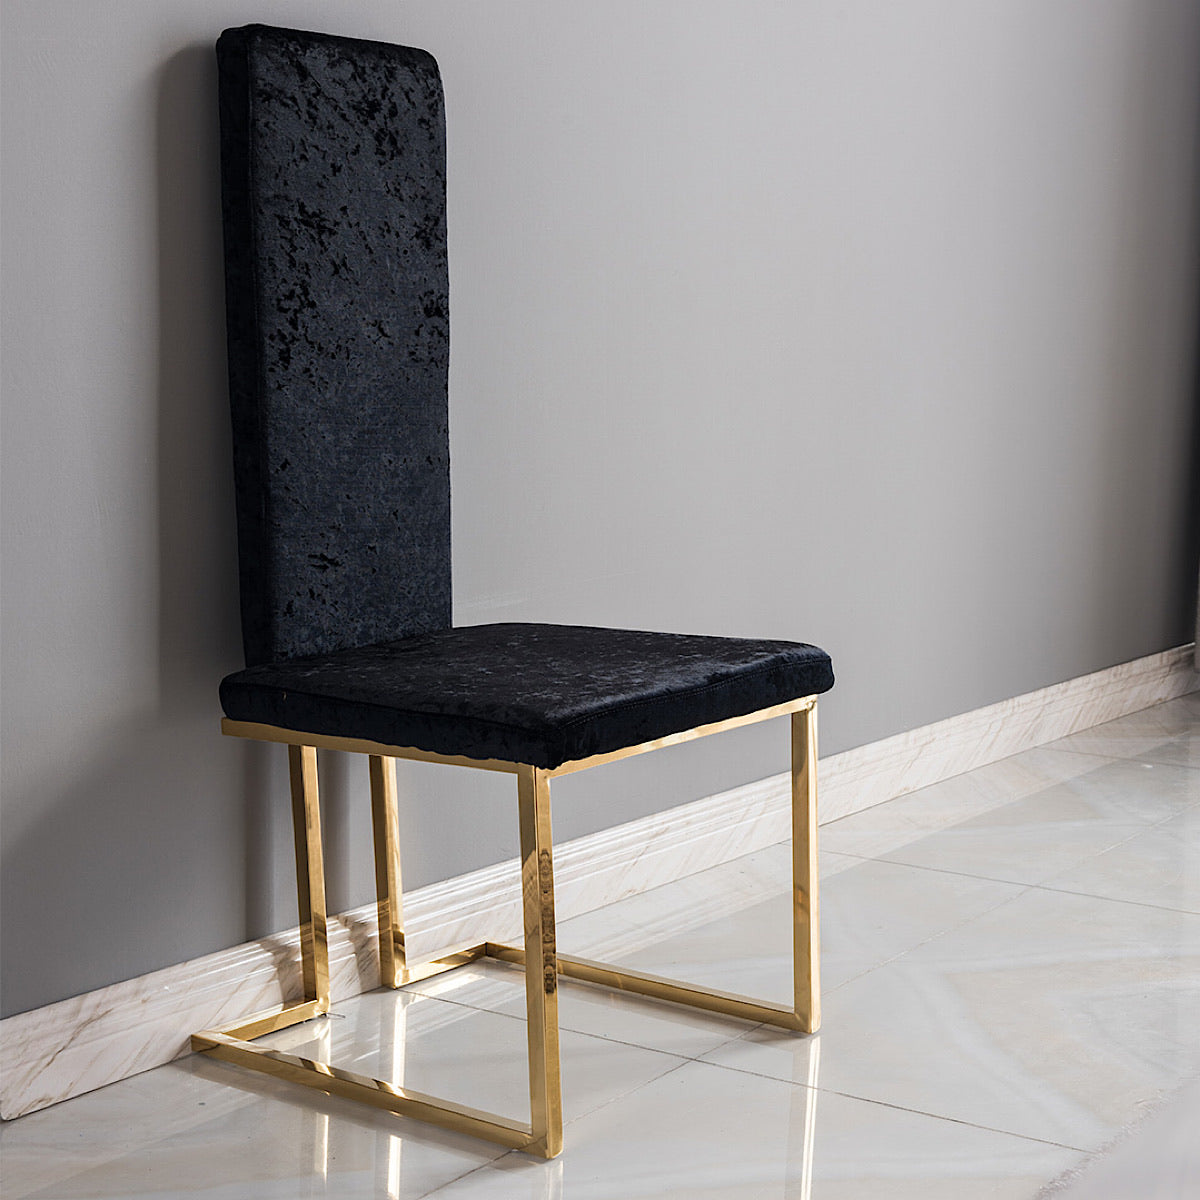 Deus Black Chair - mhomefurniture